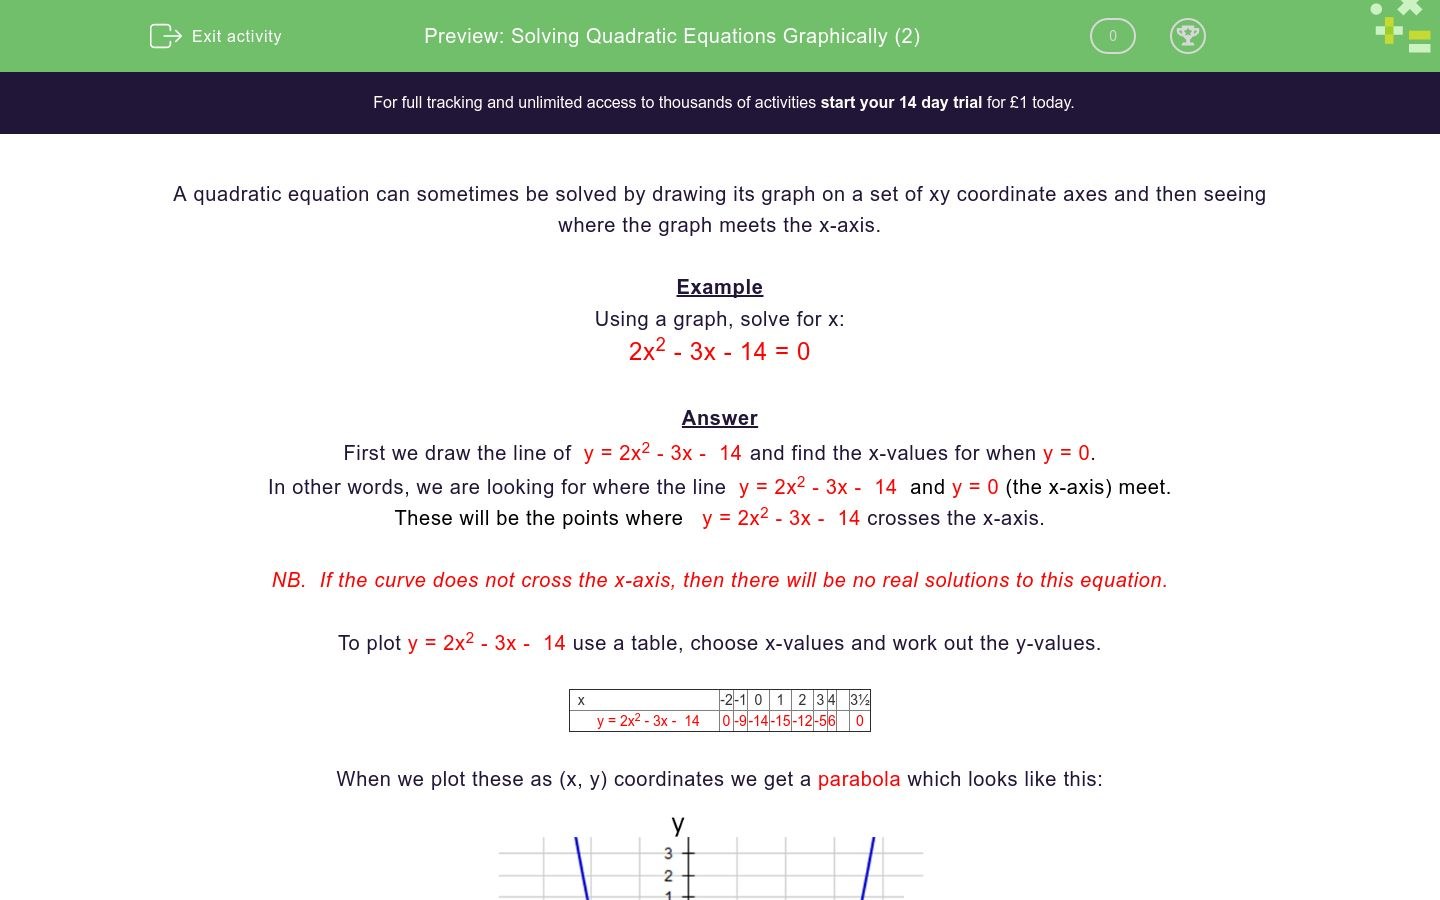 'Solving Quadratic Equations Graphically (2)' worksheet